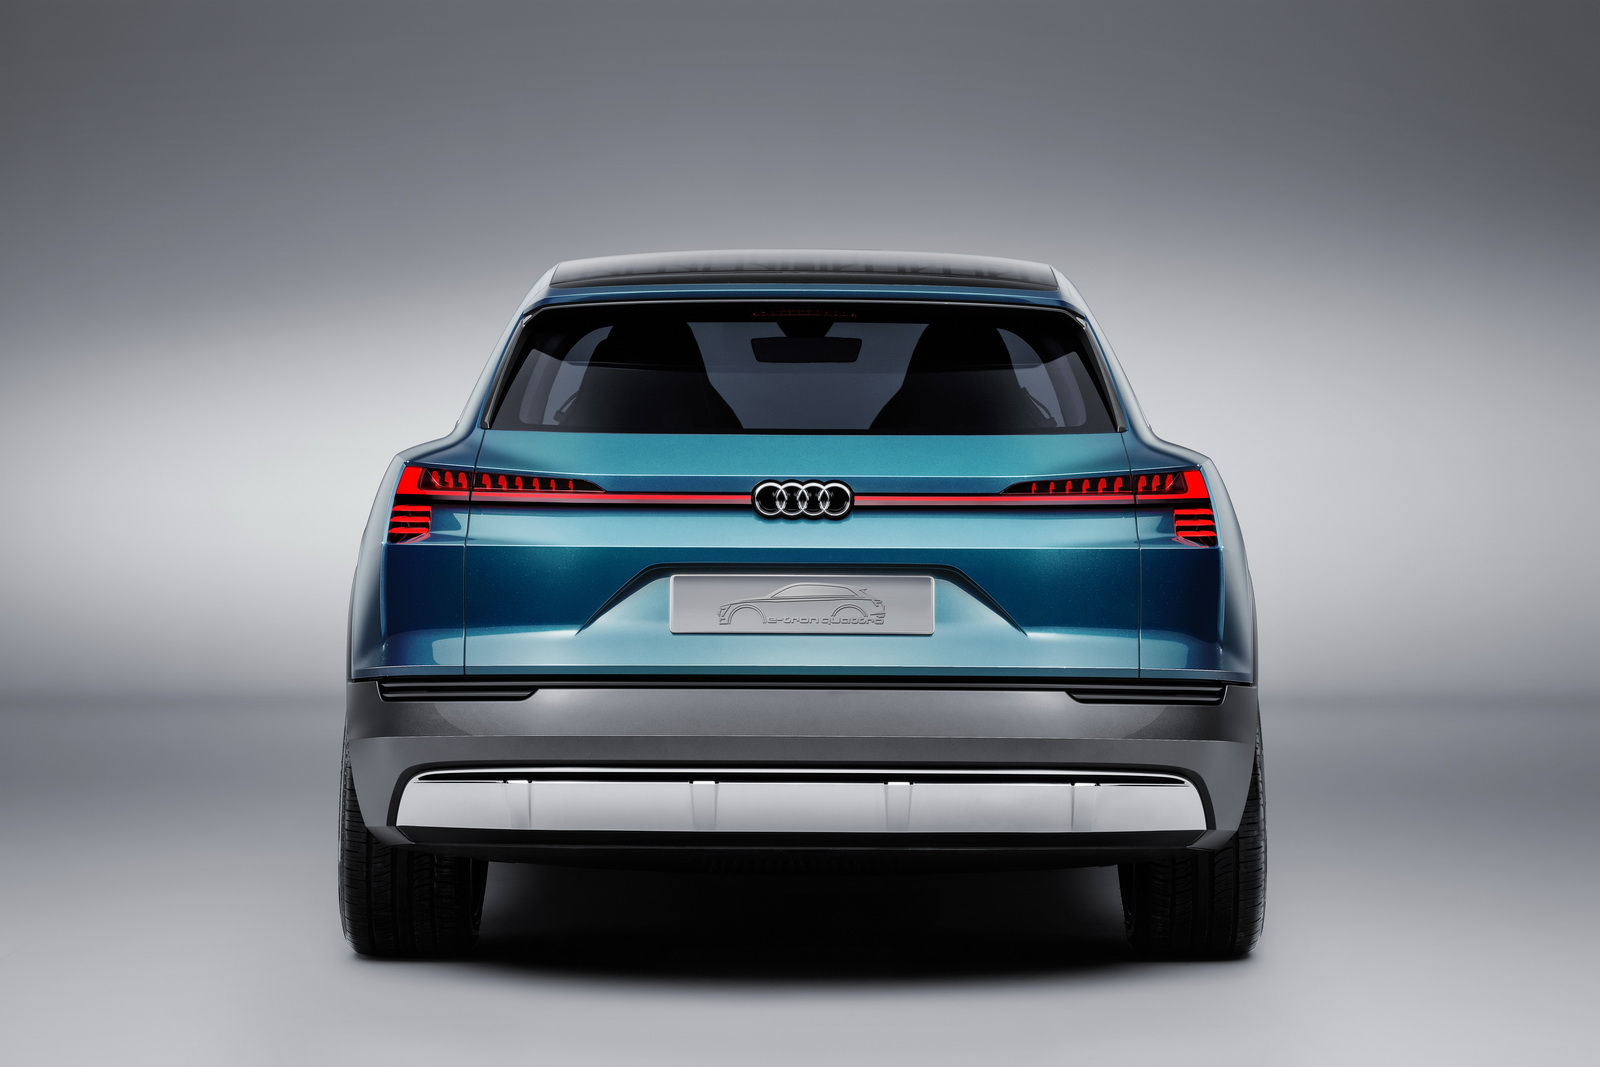 Audi's Electric SUV To Be Dubbed Simply 'e-tron'